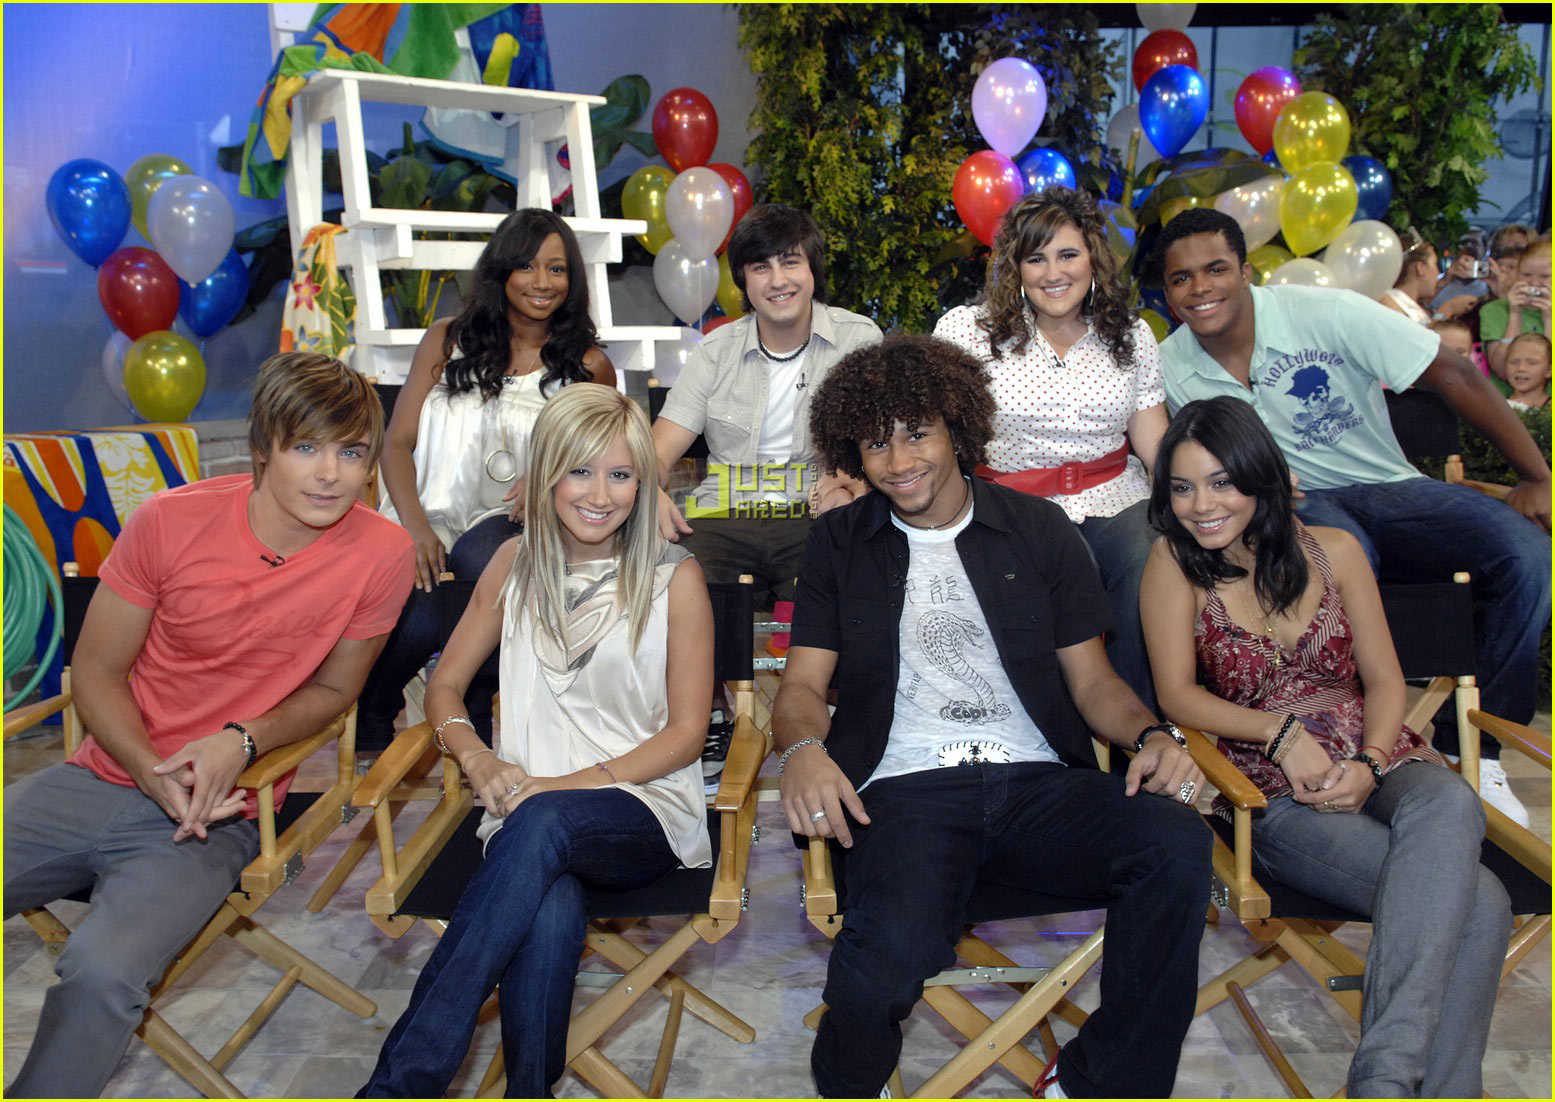 GOOD MORNING AMERICA - High School Musical 2 Photo (355983) - Fanpop